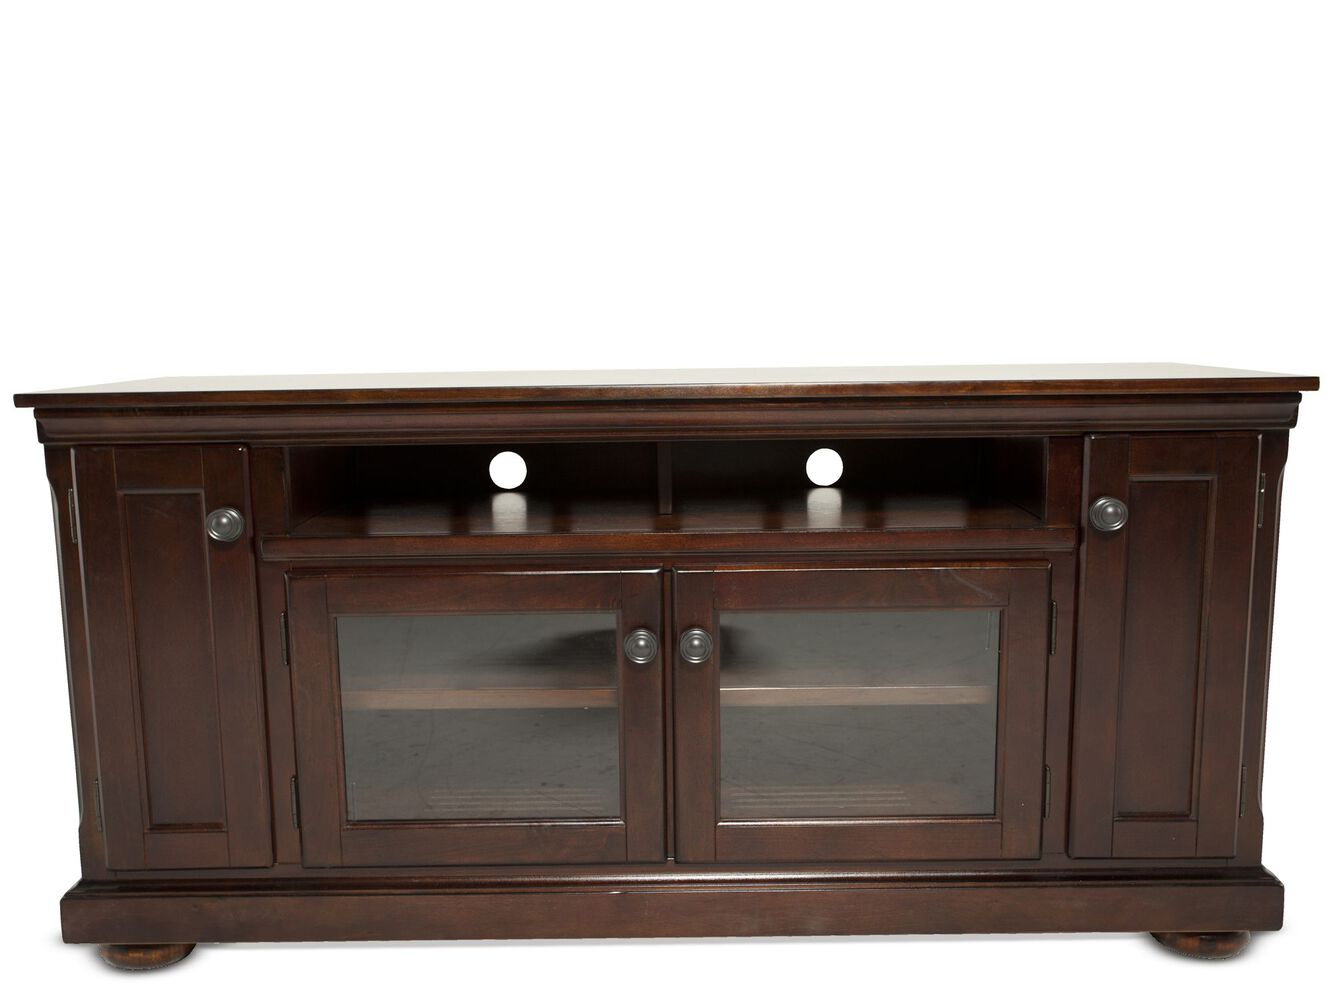 Two glass door traditional tv stand in dark brown mathis images two glass door traditional tv stand in dark brown two glass door traditional tv stand in dark brown planetlyrics Images